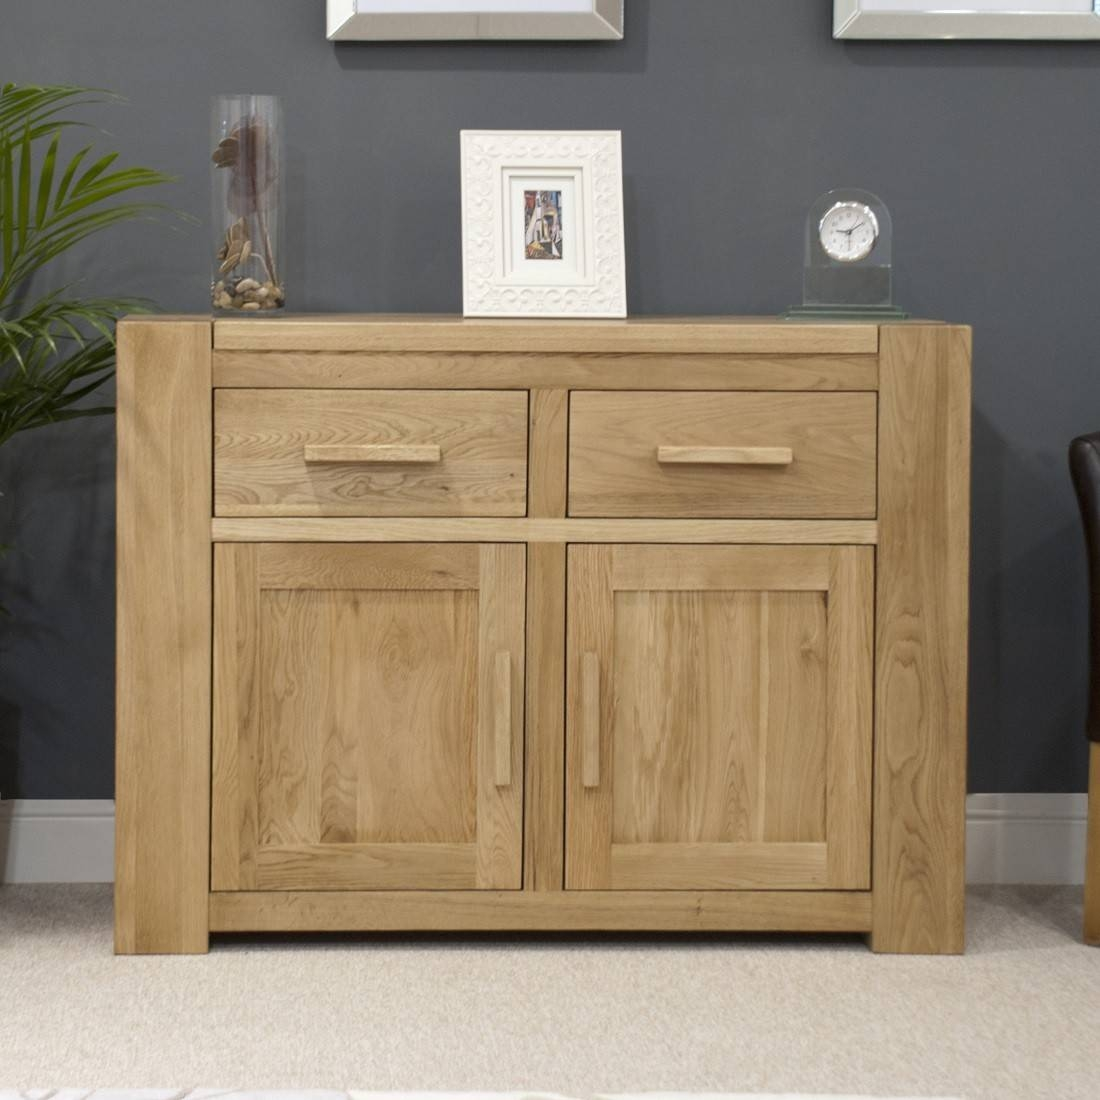 Popular Photo of Solid Oak Small Sideboards